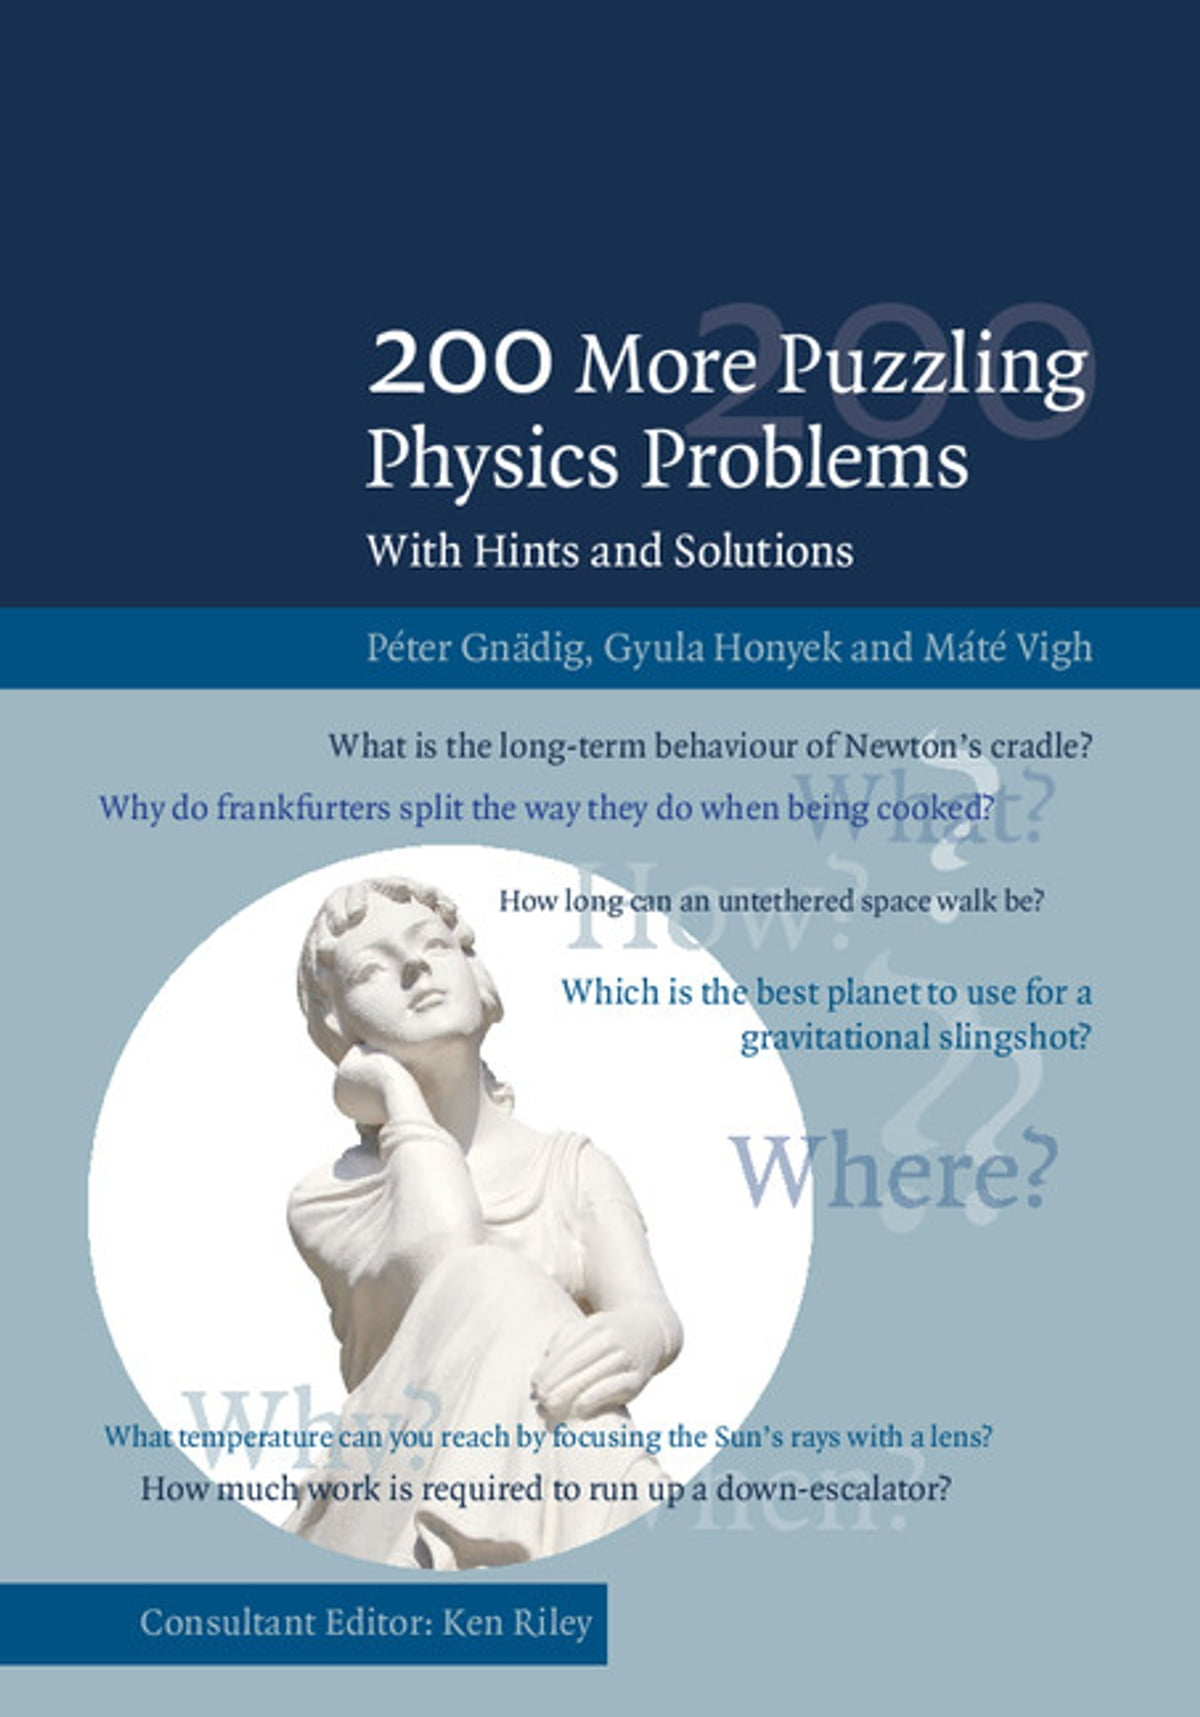 more puzzling physics problems ebook by p eacute ter gn auml dig 200 more puzzling physics problems ebook by peacuteter gnaumldig 9781316585788 kobo